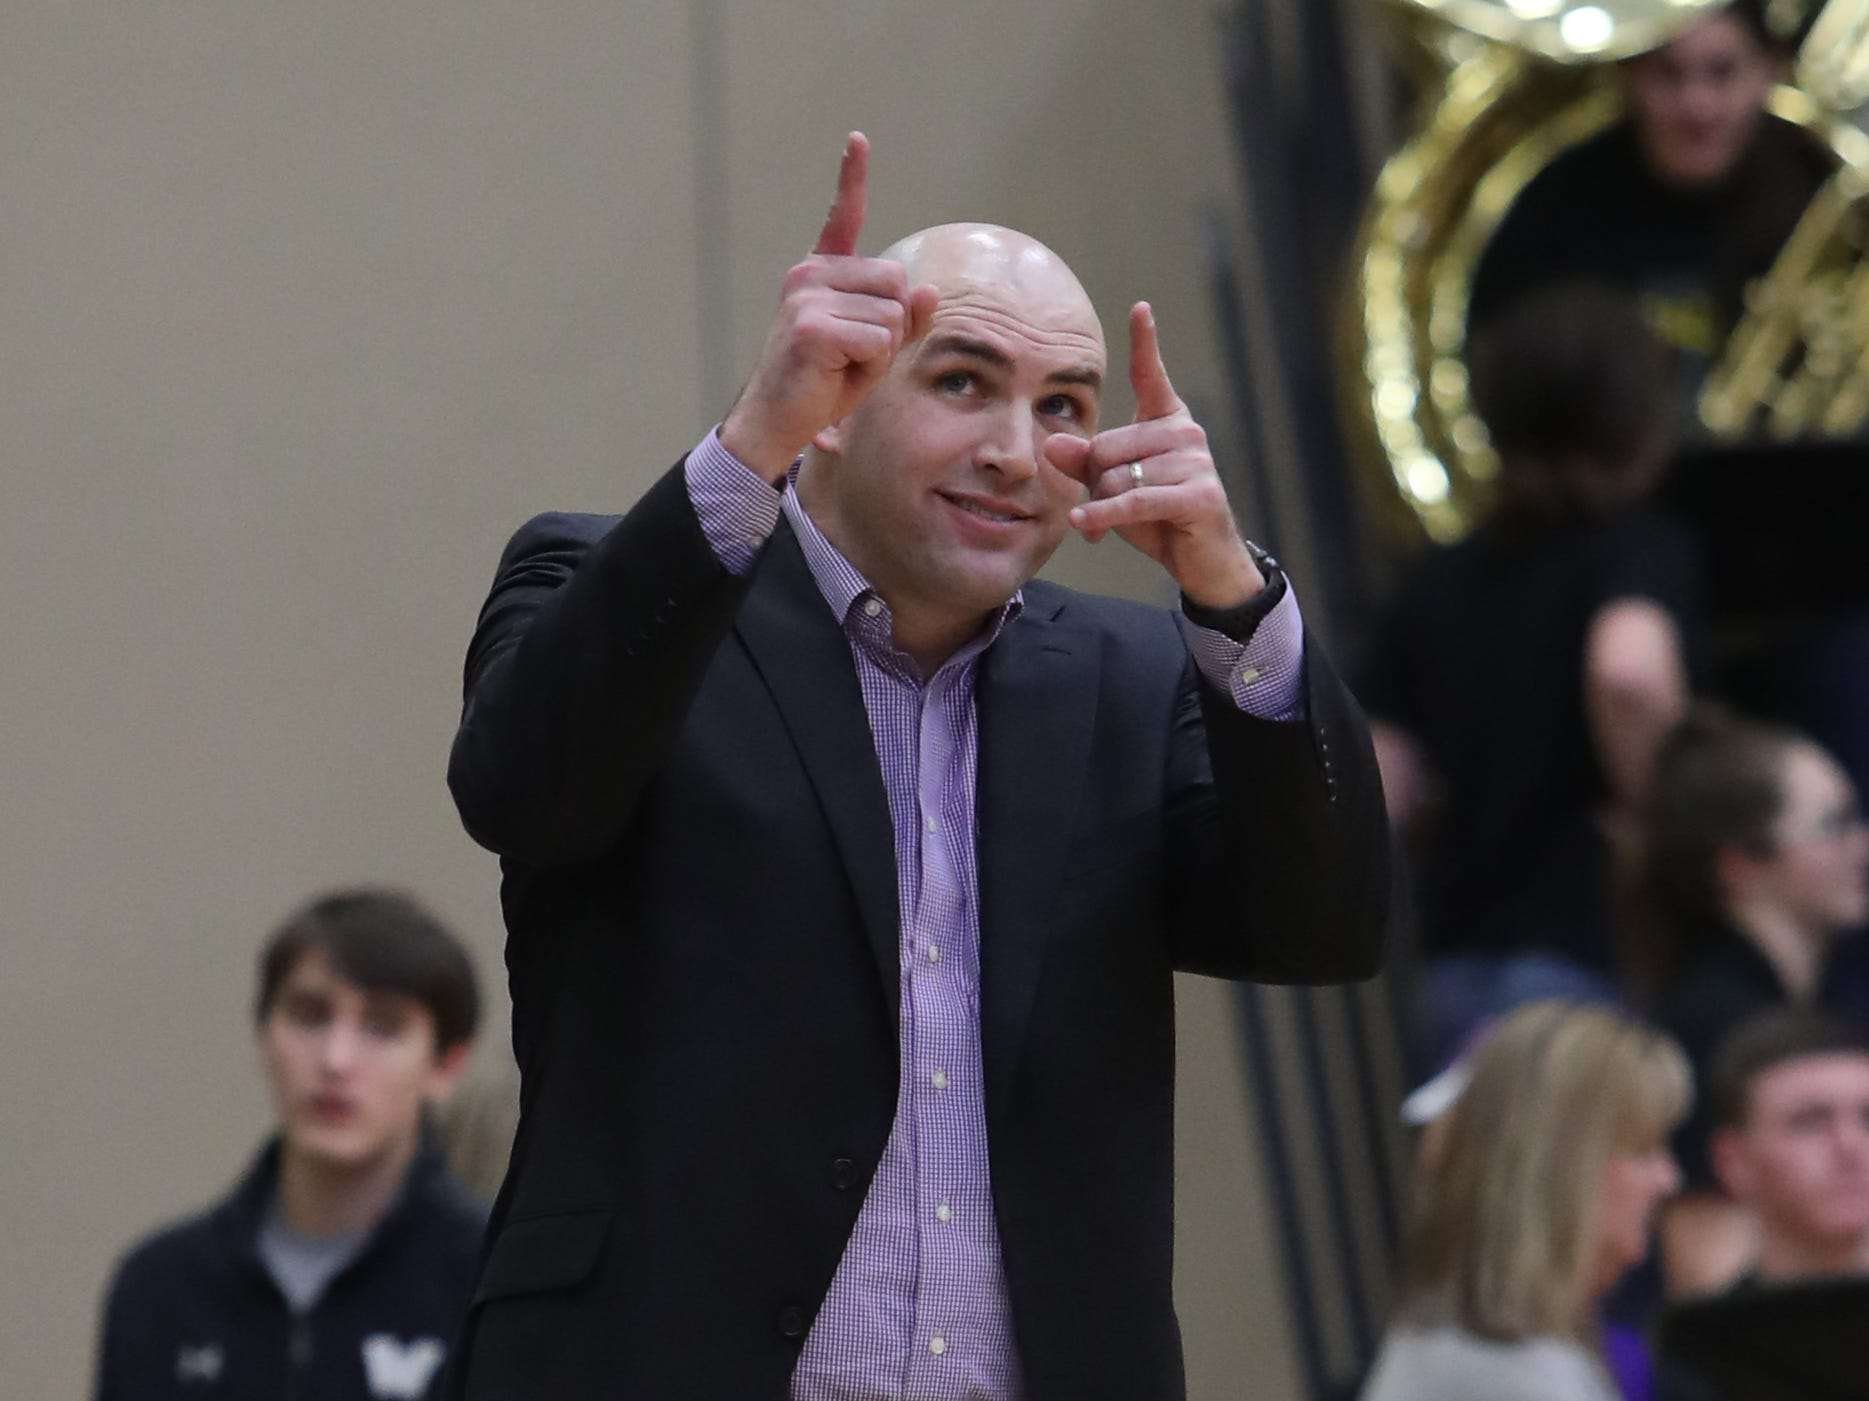 Waukee Warriors' Coach Justin Ohlat watches his team play during a game on Feb. 1, 2019 at Southeast Polk High School.